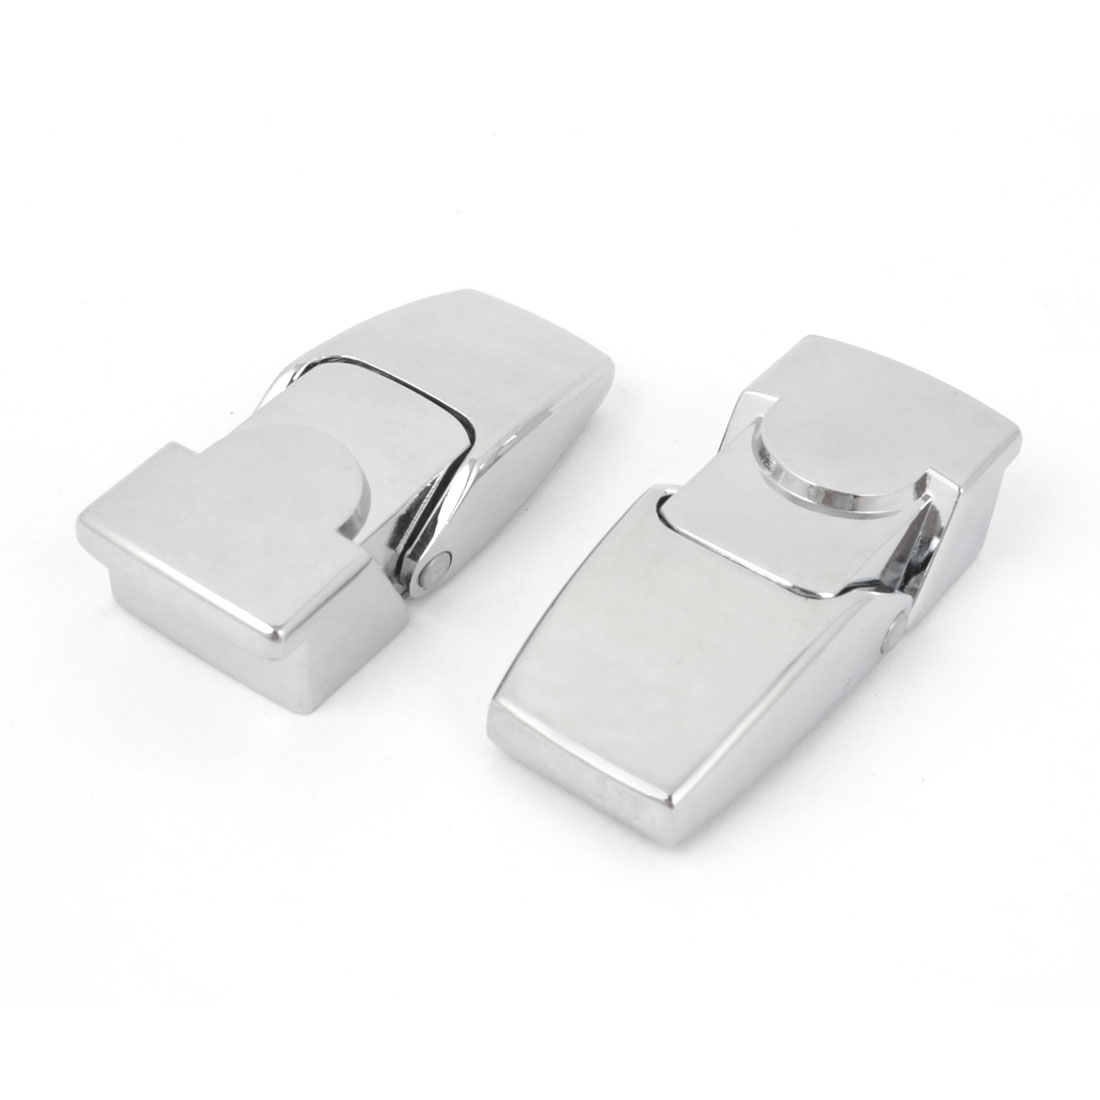 Spring Load Metal Hasp Latch Black DSK for Cabinets Silver Tone 2Pcs